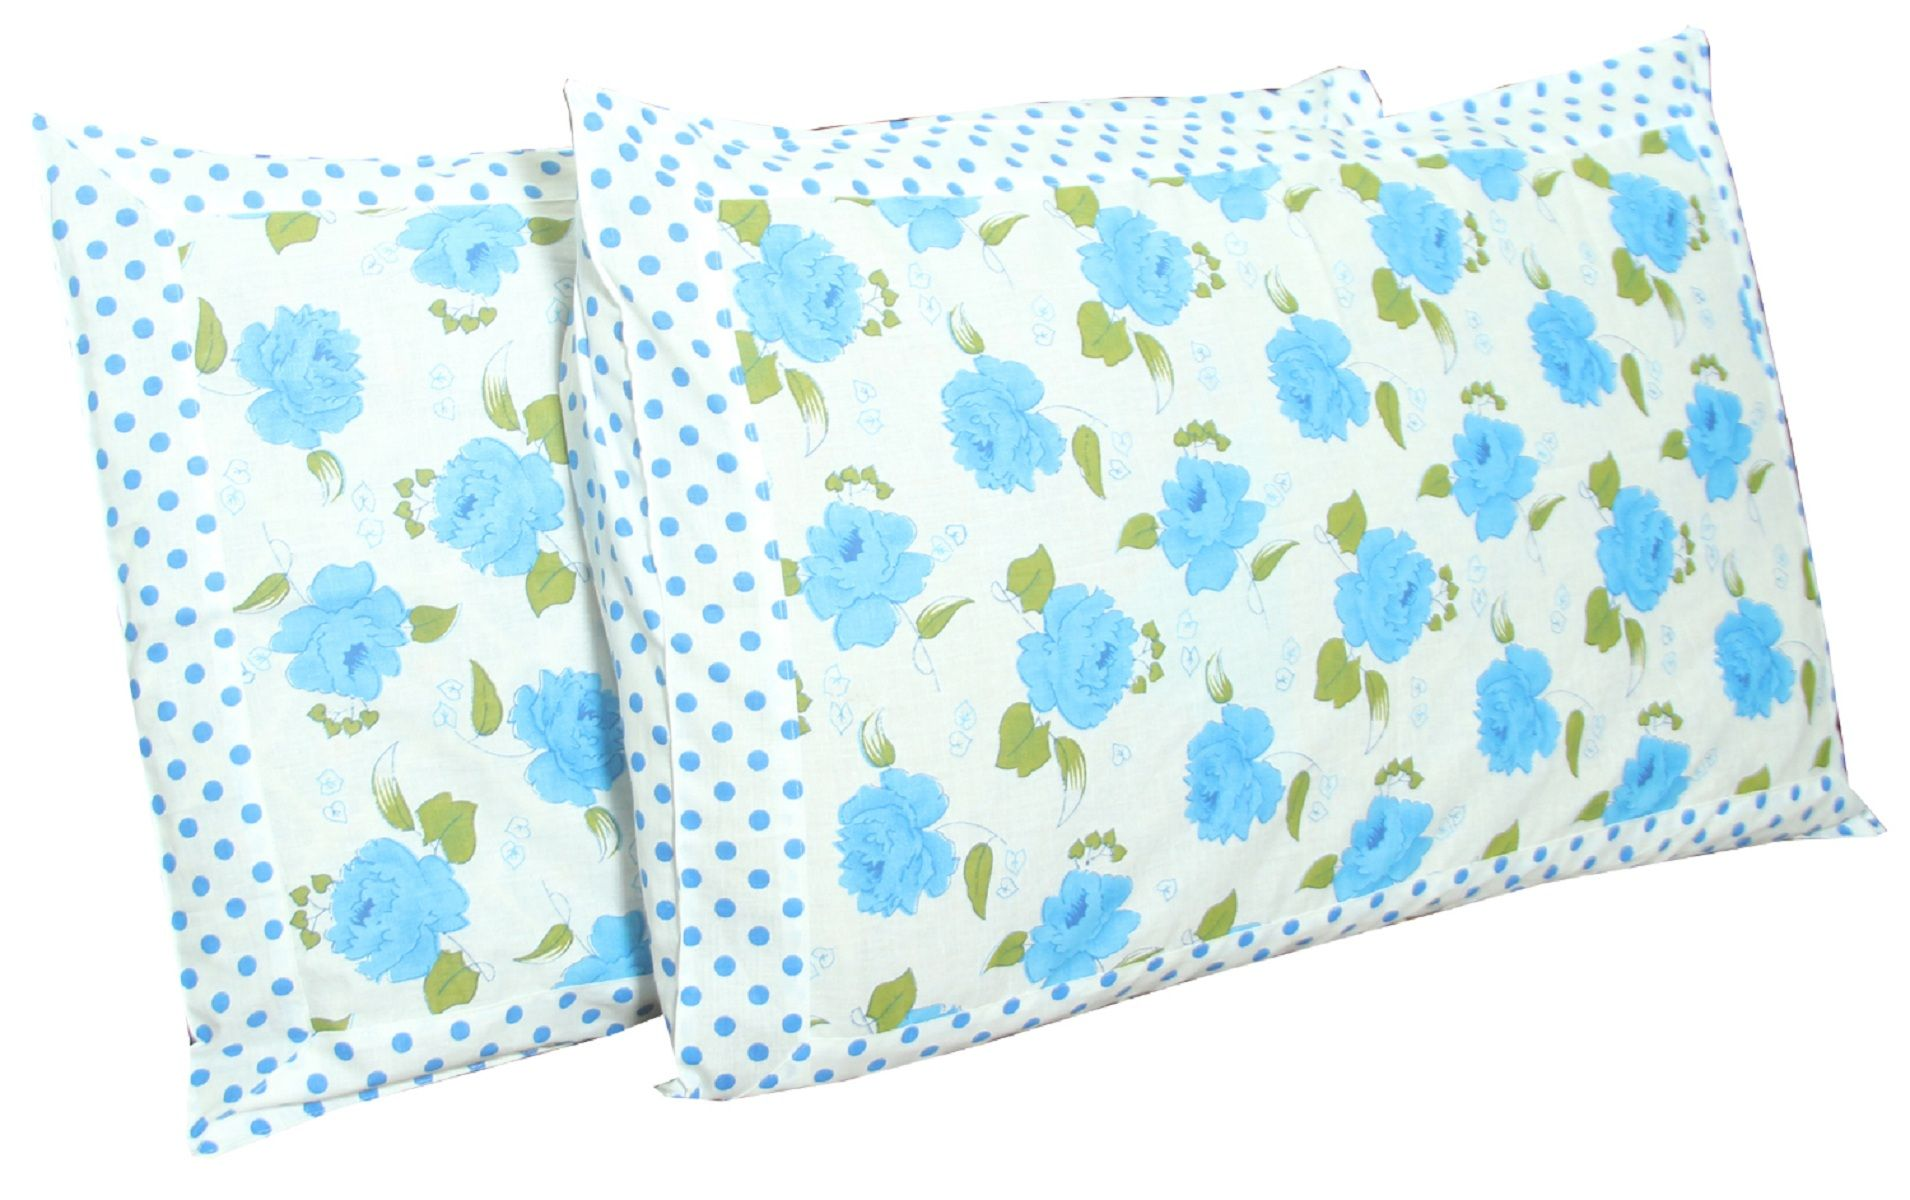 Kuber Industries™ Exclusive Blue Flower Print Premium Cotton Pillow Cover -Set of 2 Pcs (White) Code-Pillowc03